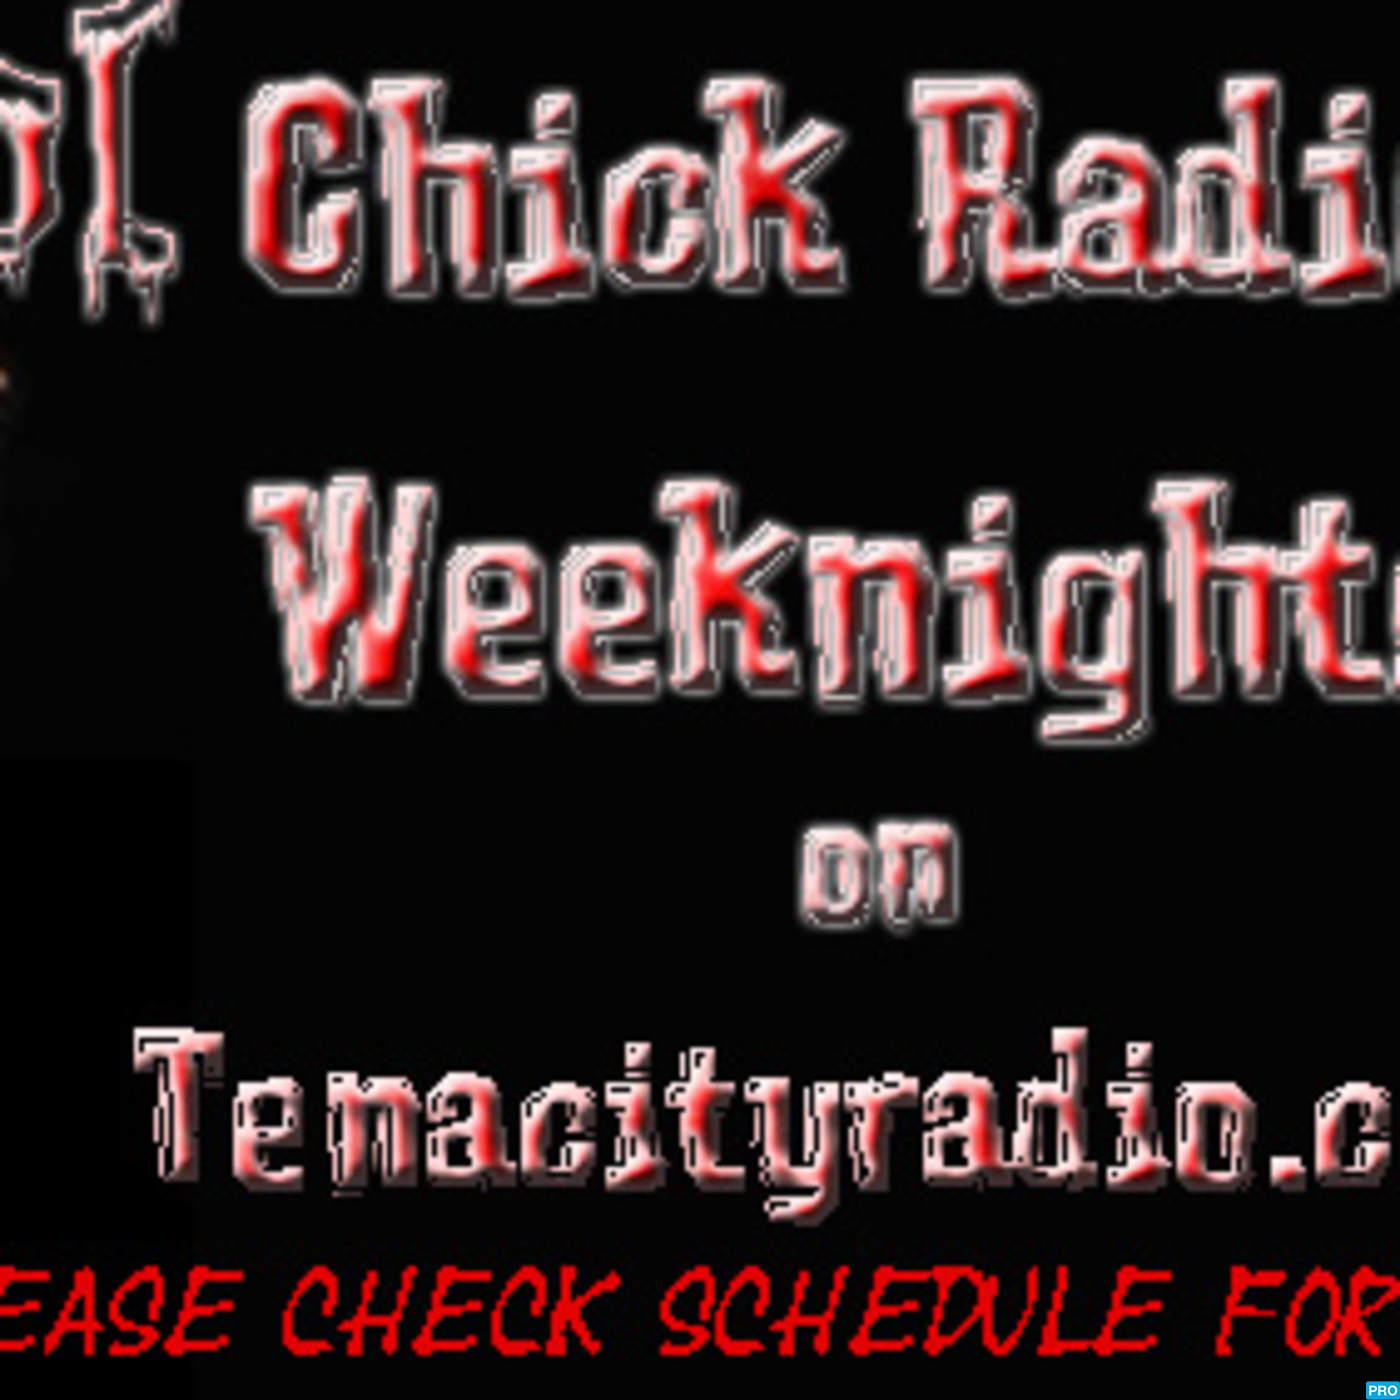 Cool Chick Radio